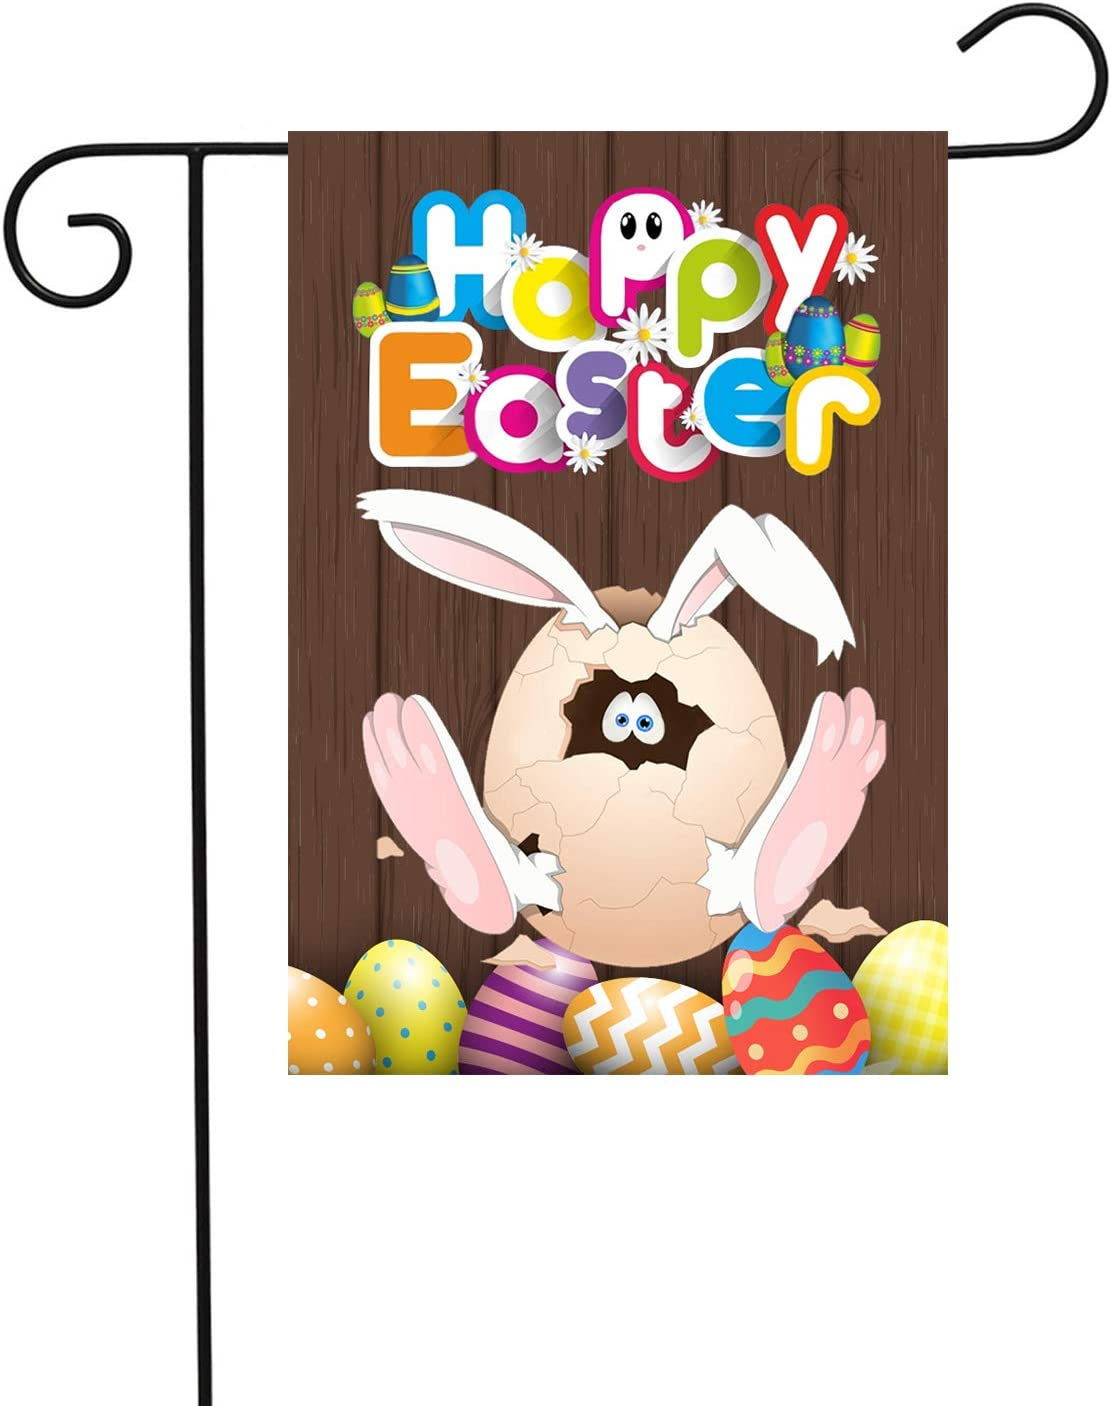 PANHUI Happy Easter Day Garden Flag Bunny Eggs Decorative for Spring Summer Outdoor Yard & Home Decorations, Double Sided Flag 12 x 18 Inch